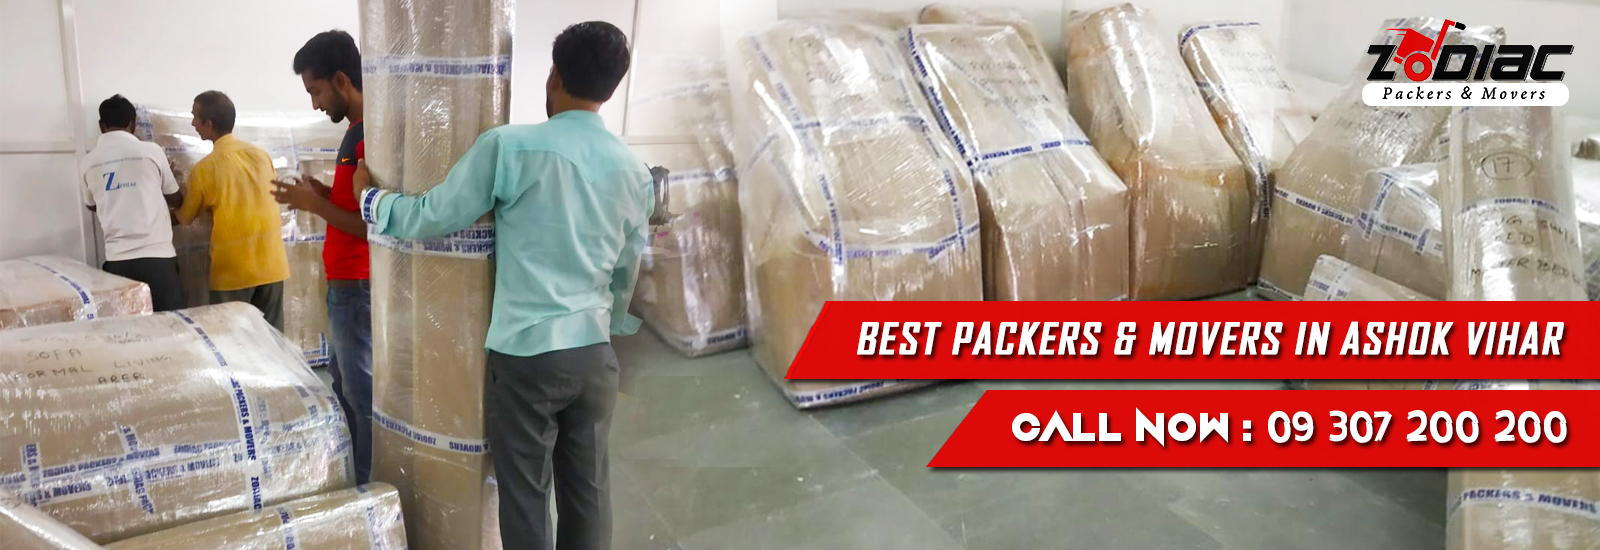 Packers and Movers in Ashok Vihar